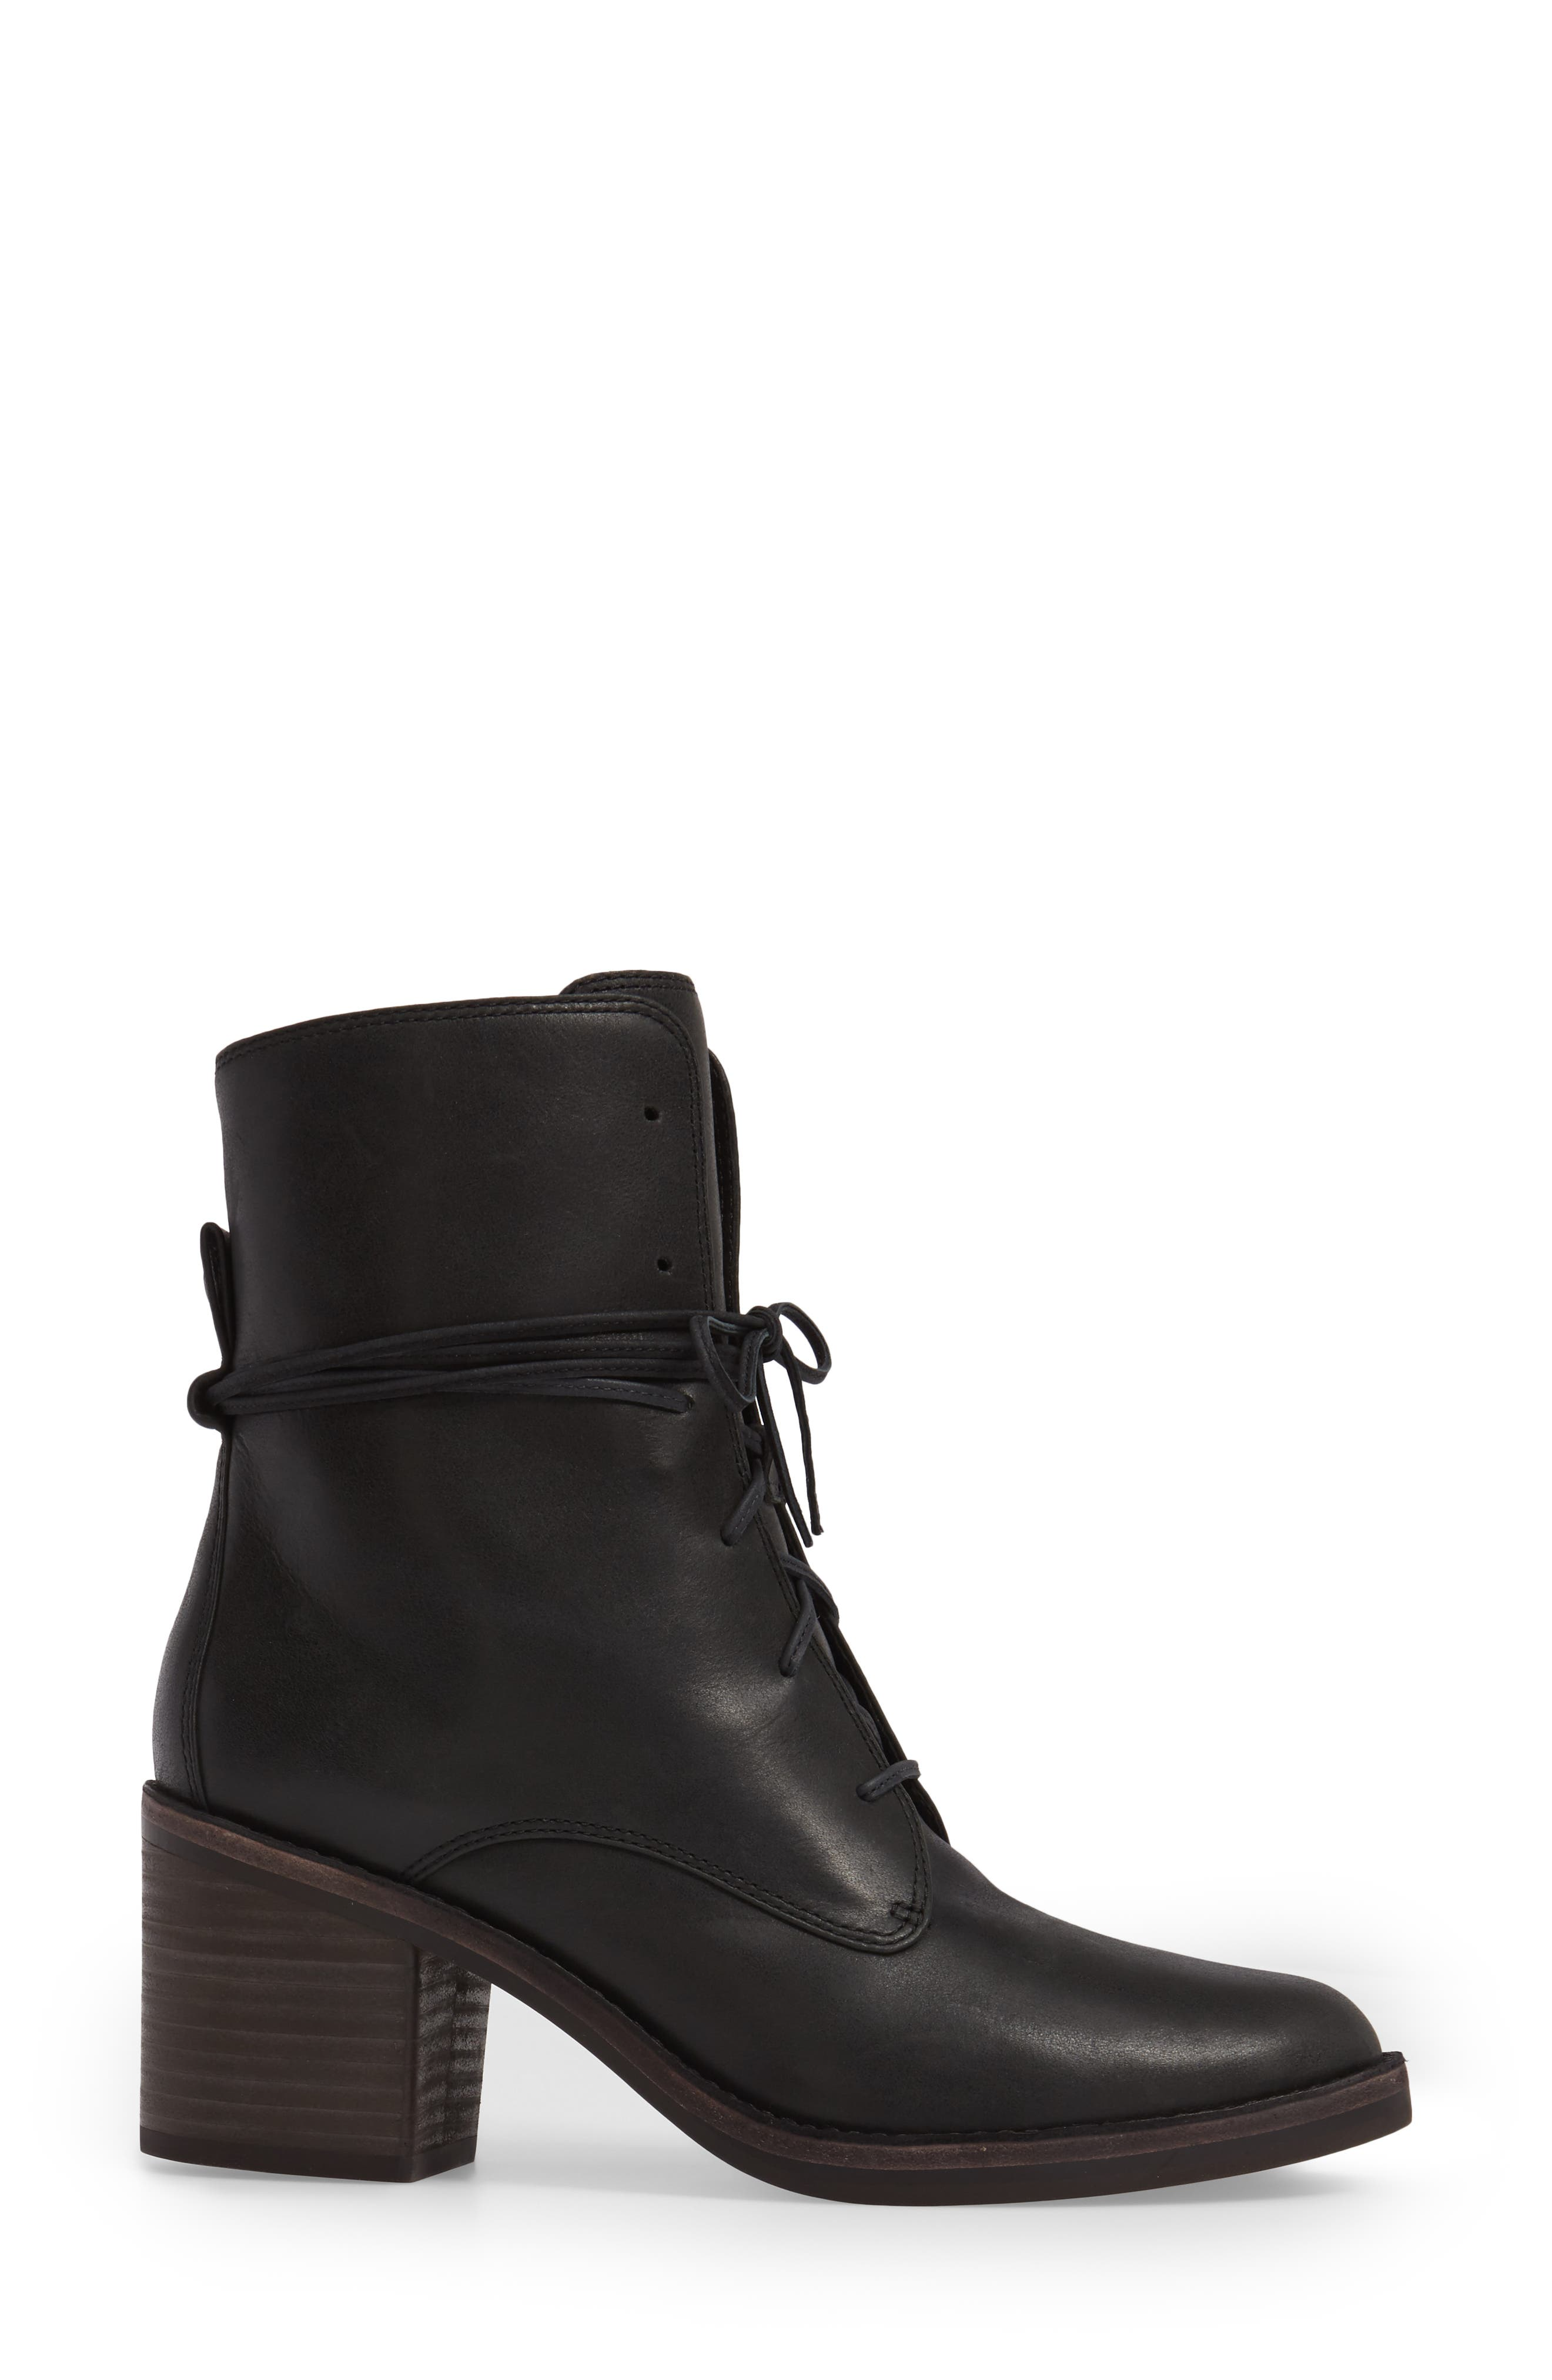 Oriana Lace-Up Boot,                             Alternate thumbnail 3, color,                             Black Leather